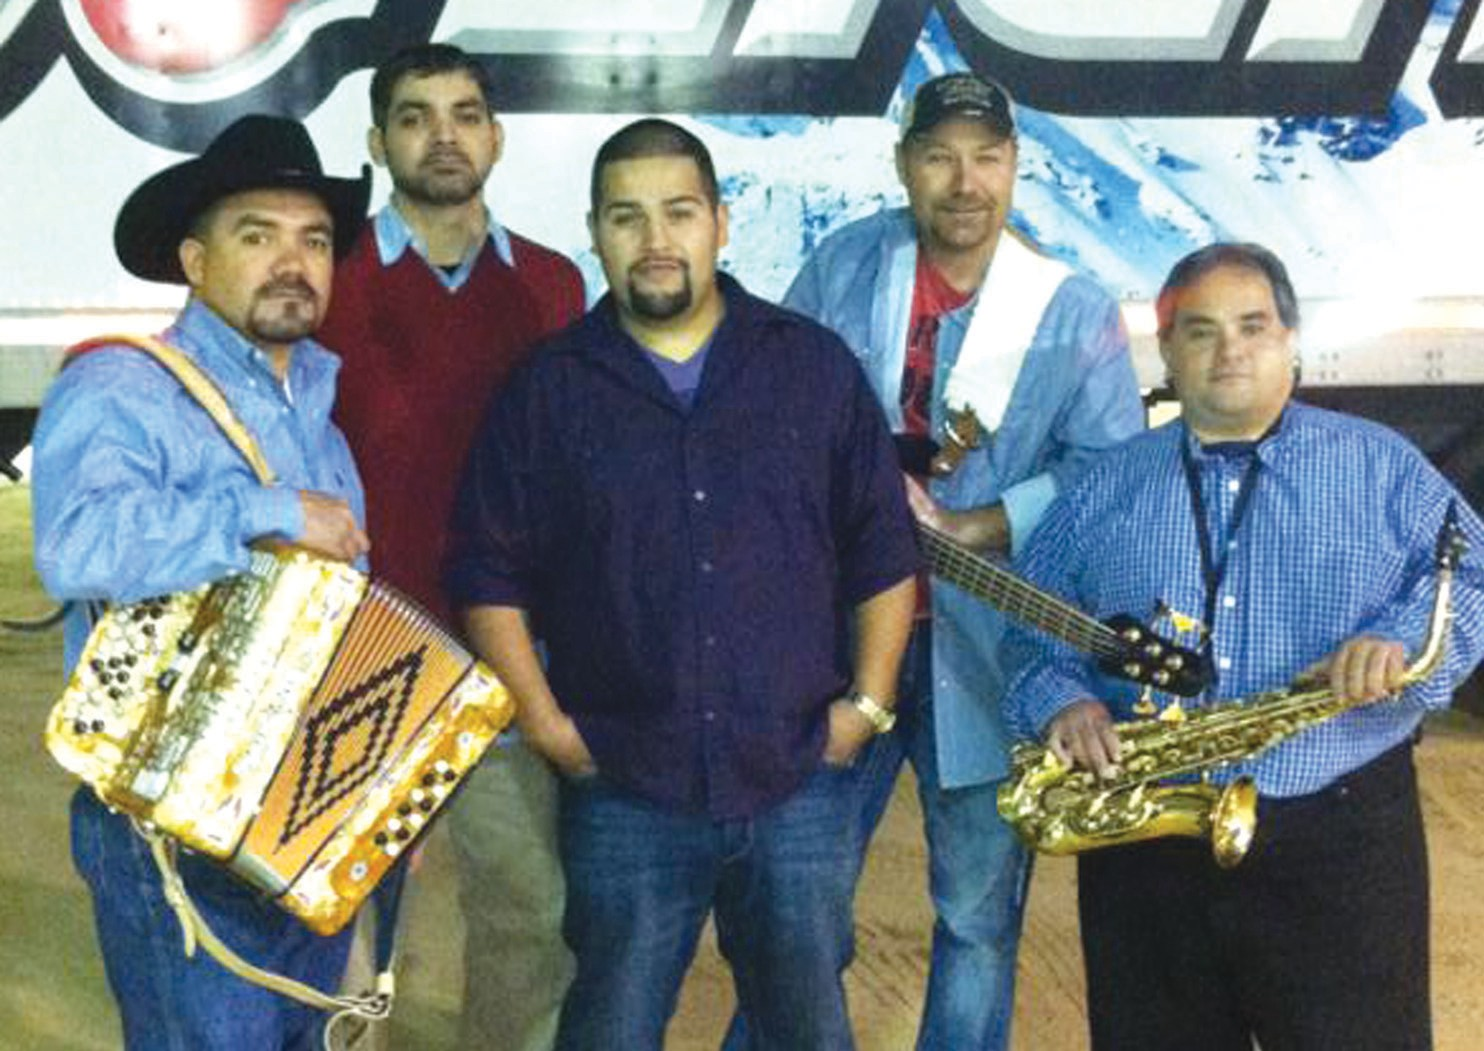 Tejano Cavalry members are, left to right: Angel Valdez, Fabian Valdez, Rick Ortiz, Bruce Hudson and Javier Villarreal. Not pictured is Leo Leal.